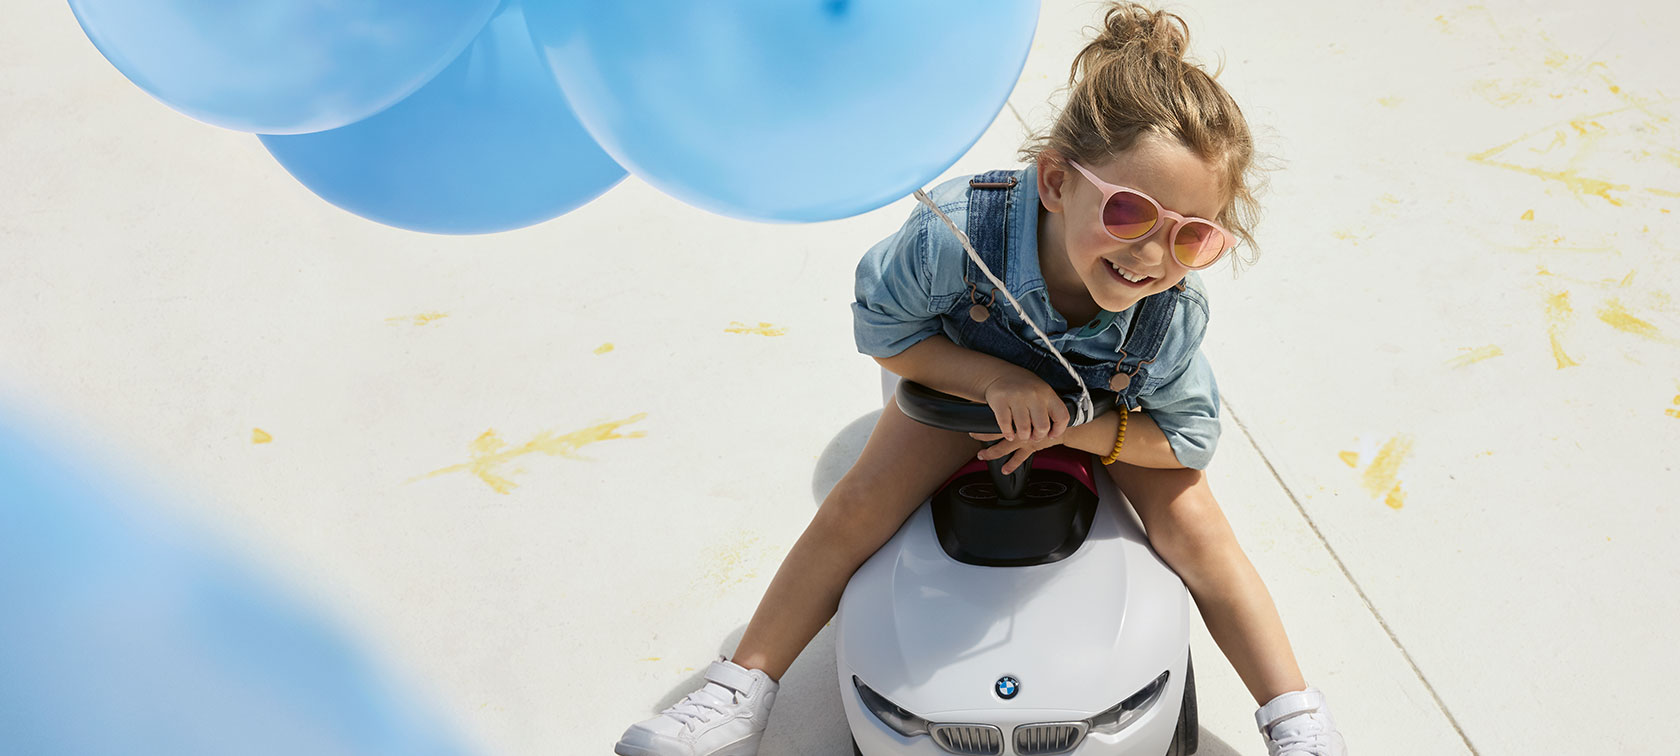 A girl with pink sunglasses and a blue balloon sits happily on a BMW Baby Racer.